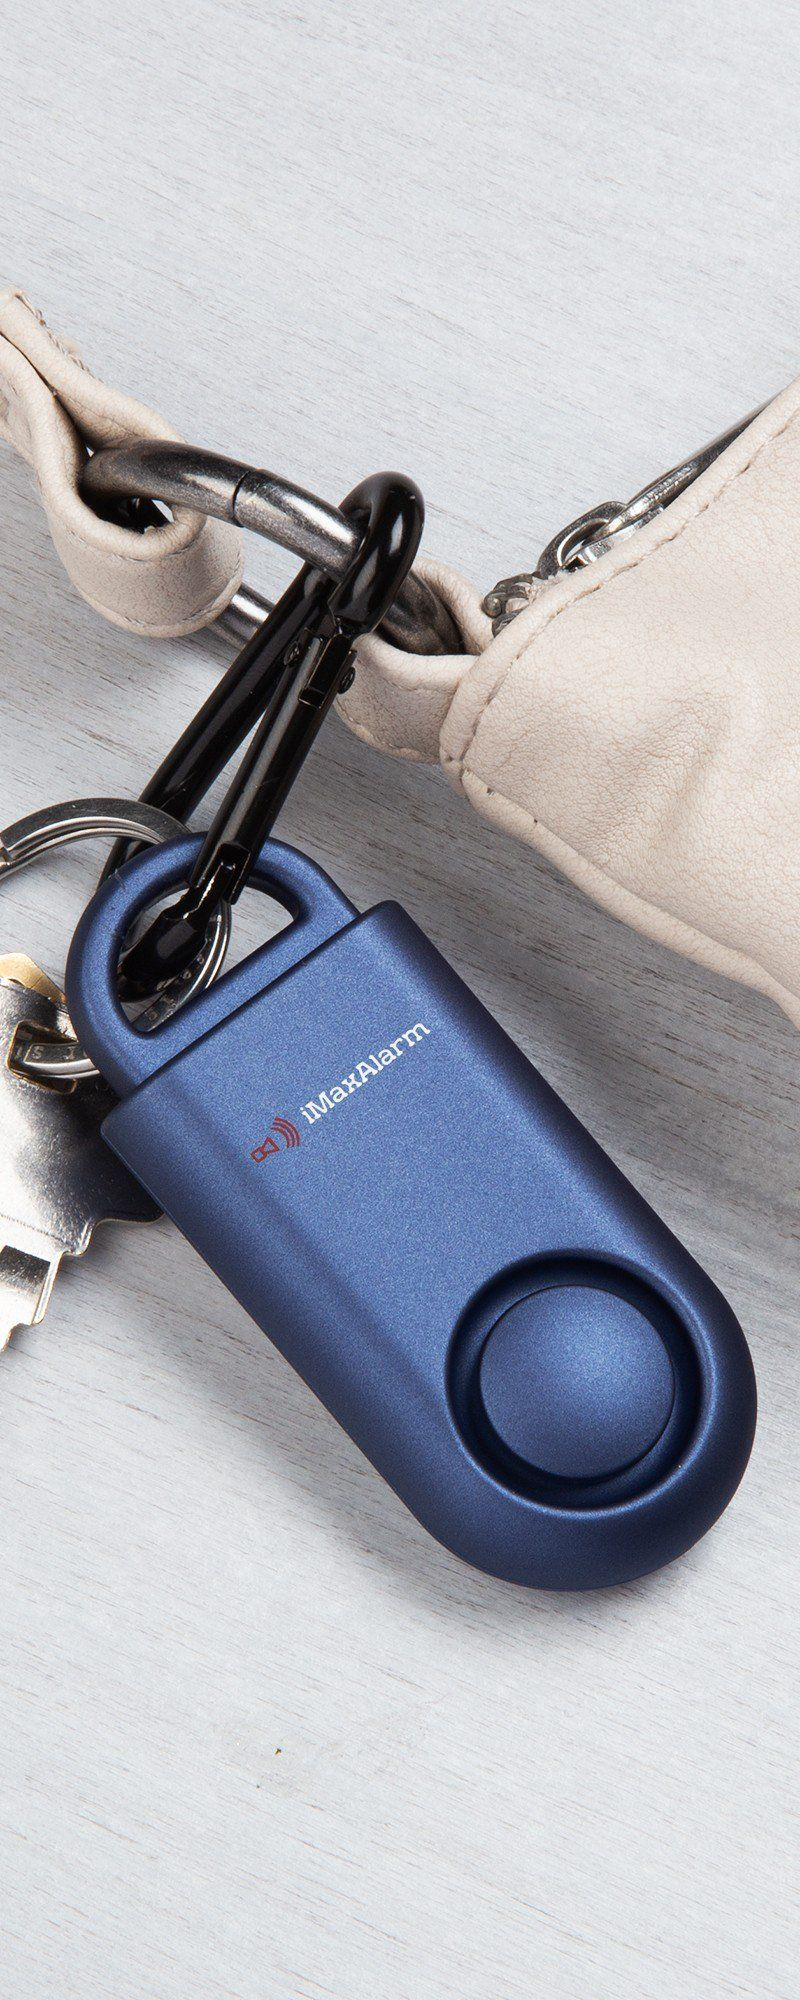 Designed To Mimic A Key Fob This Small Keyring Alarm Is A Powerful Call For Help Pull The Top Off For Security Alarm Home Security Systems Personal Security